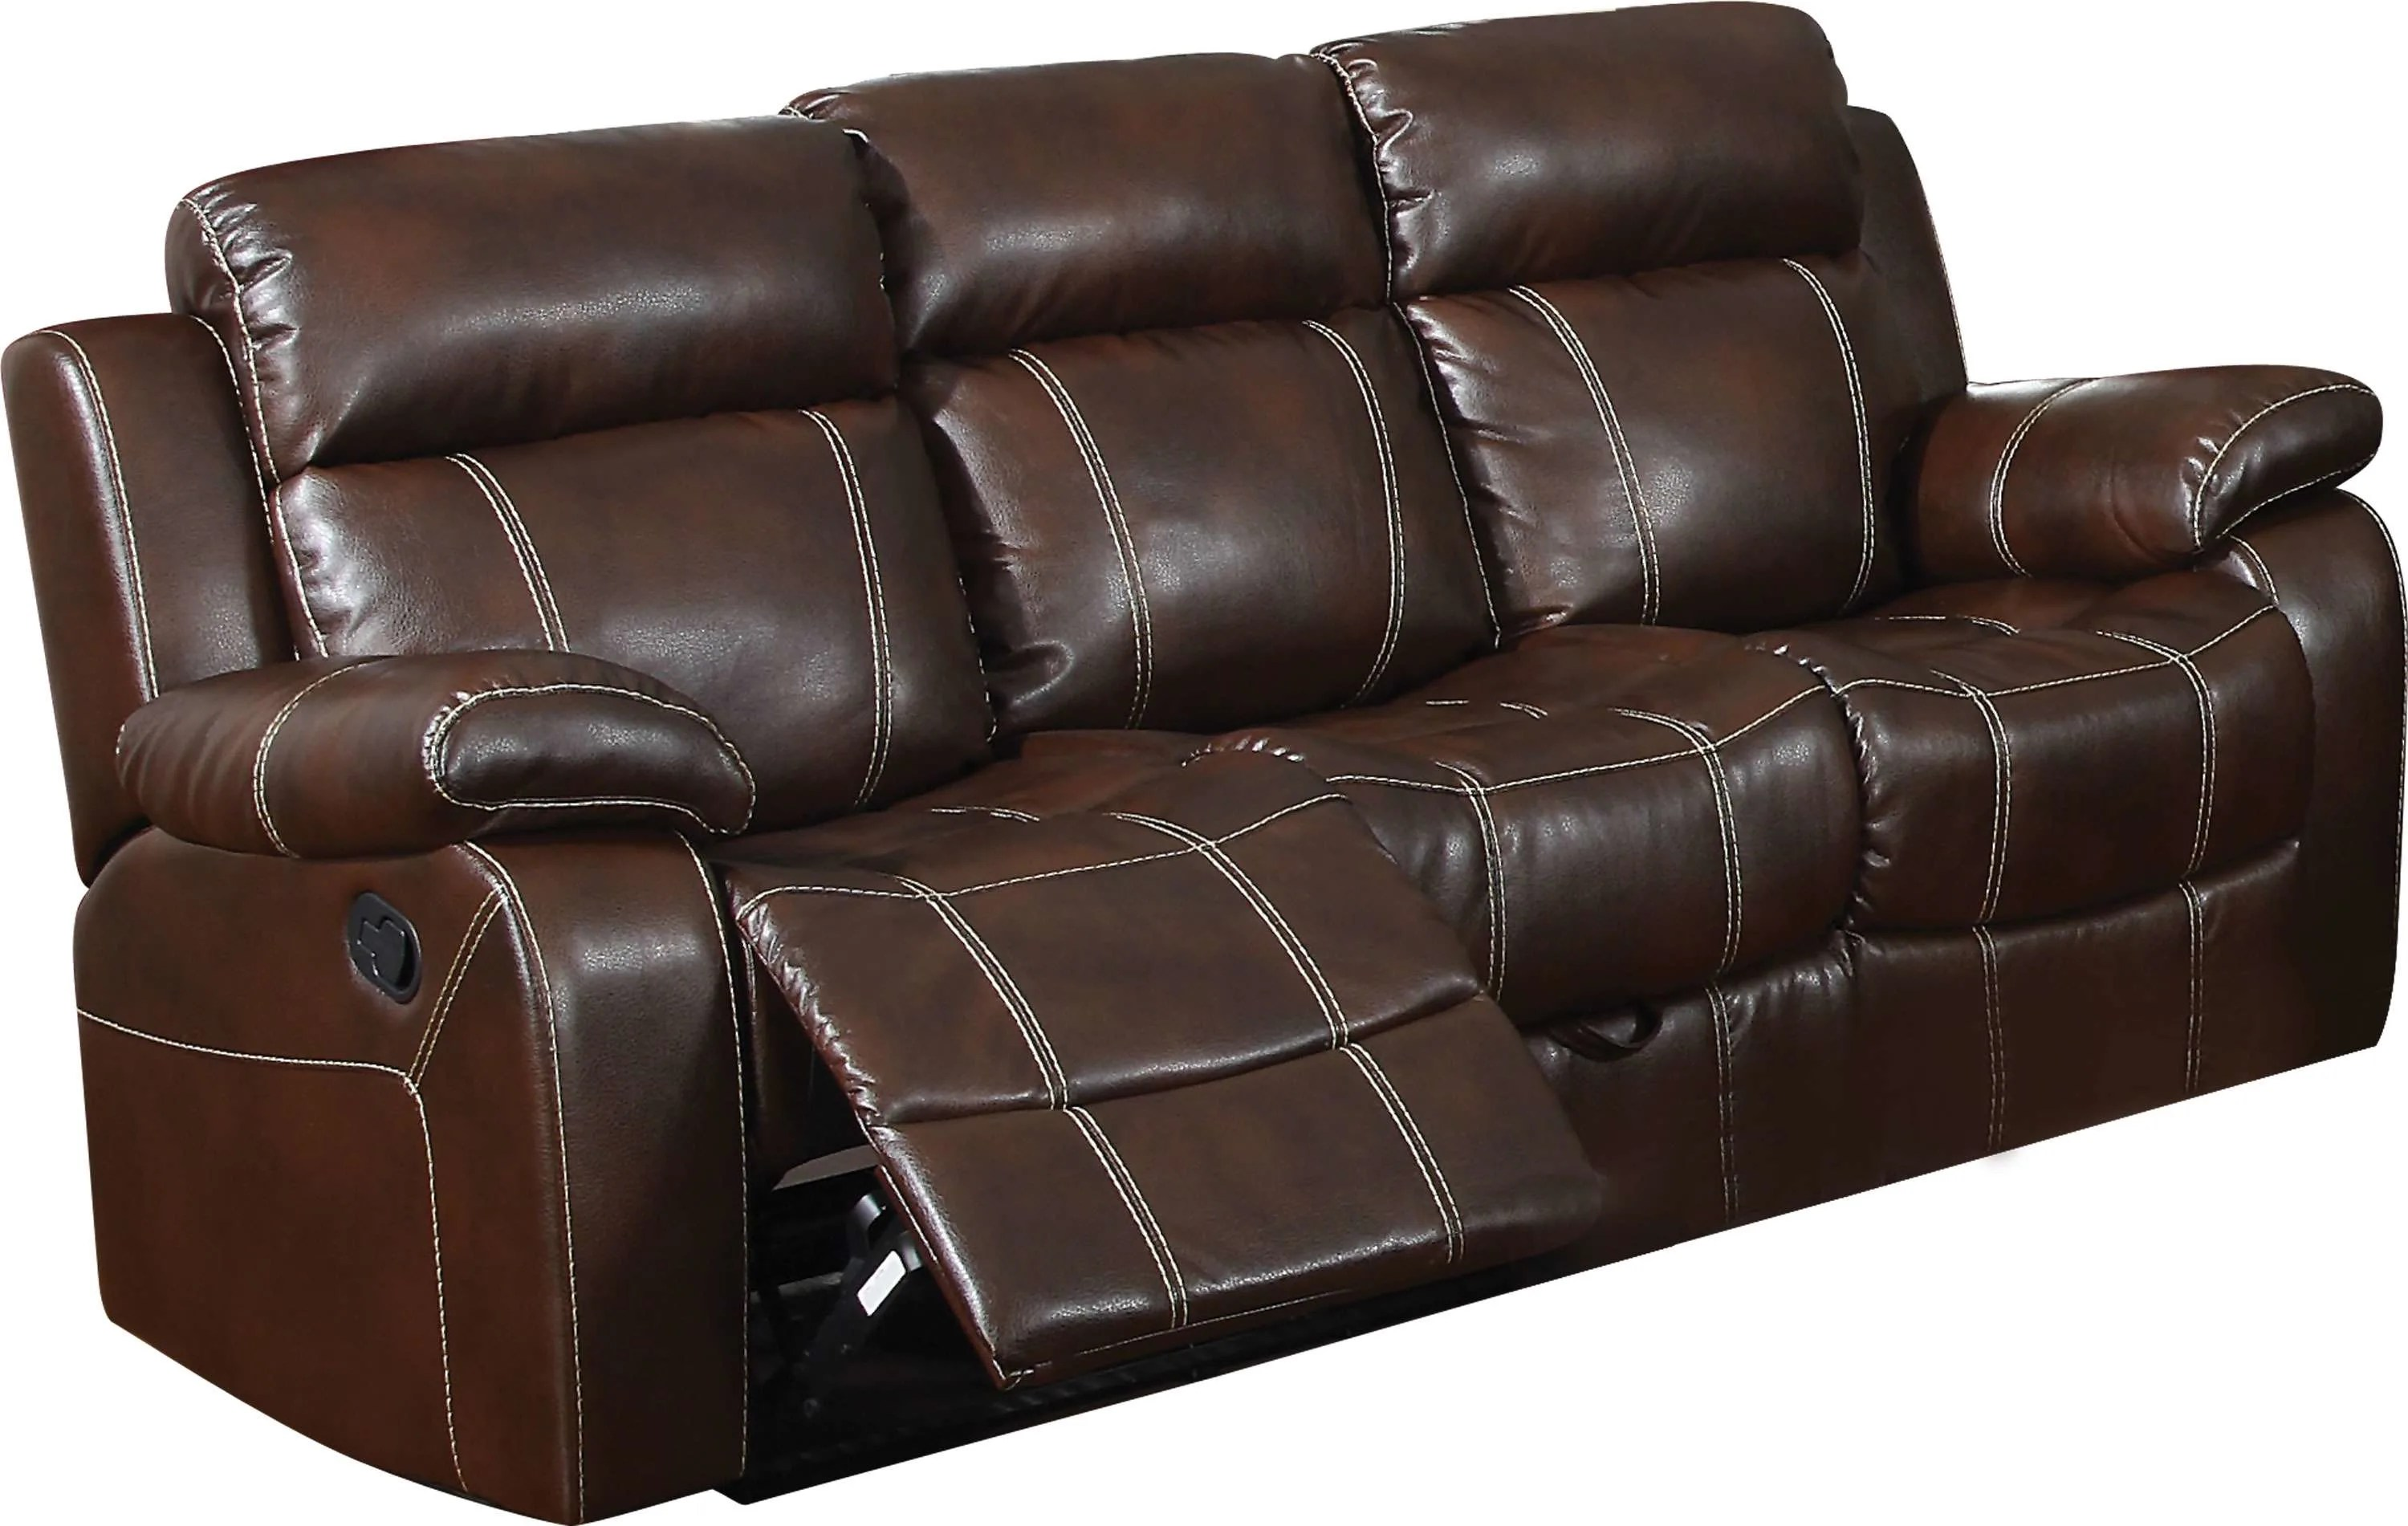 chestnut colored leather sofa antique victorian styles coaster myleene motion with pillow arms